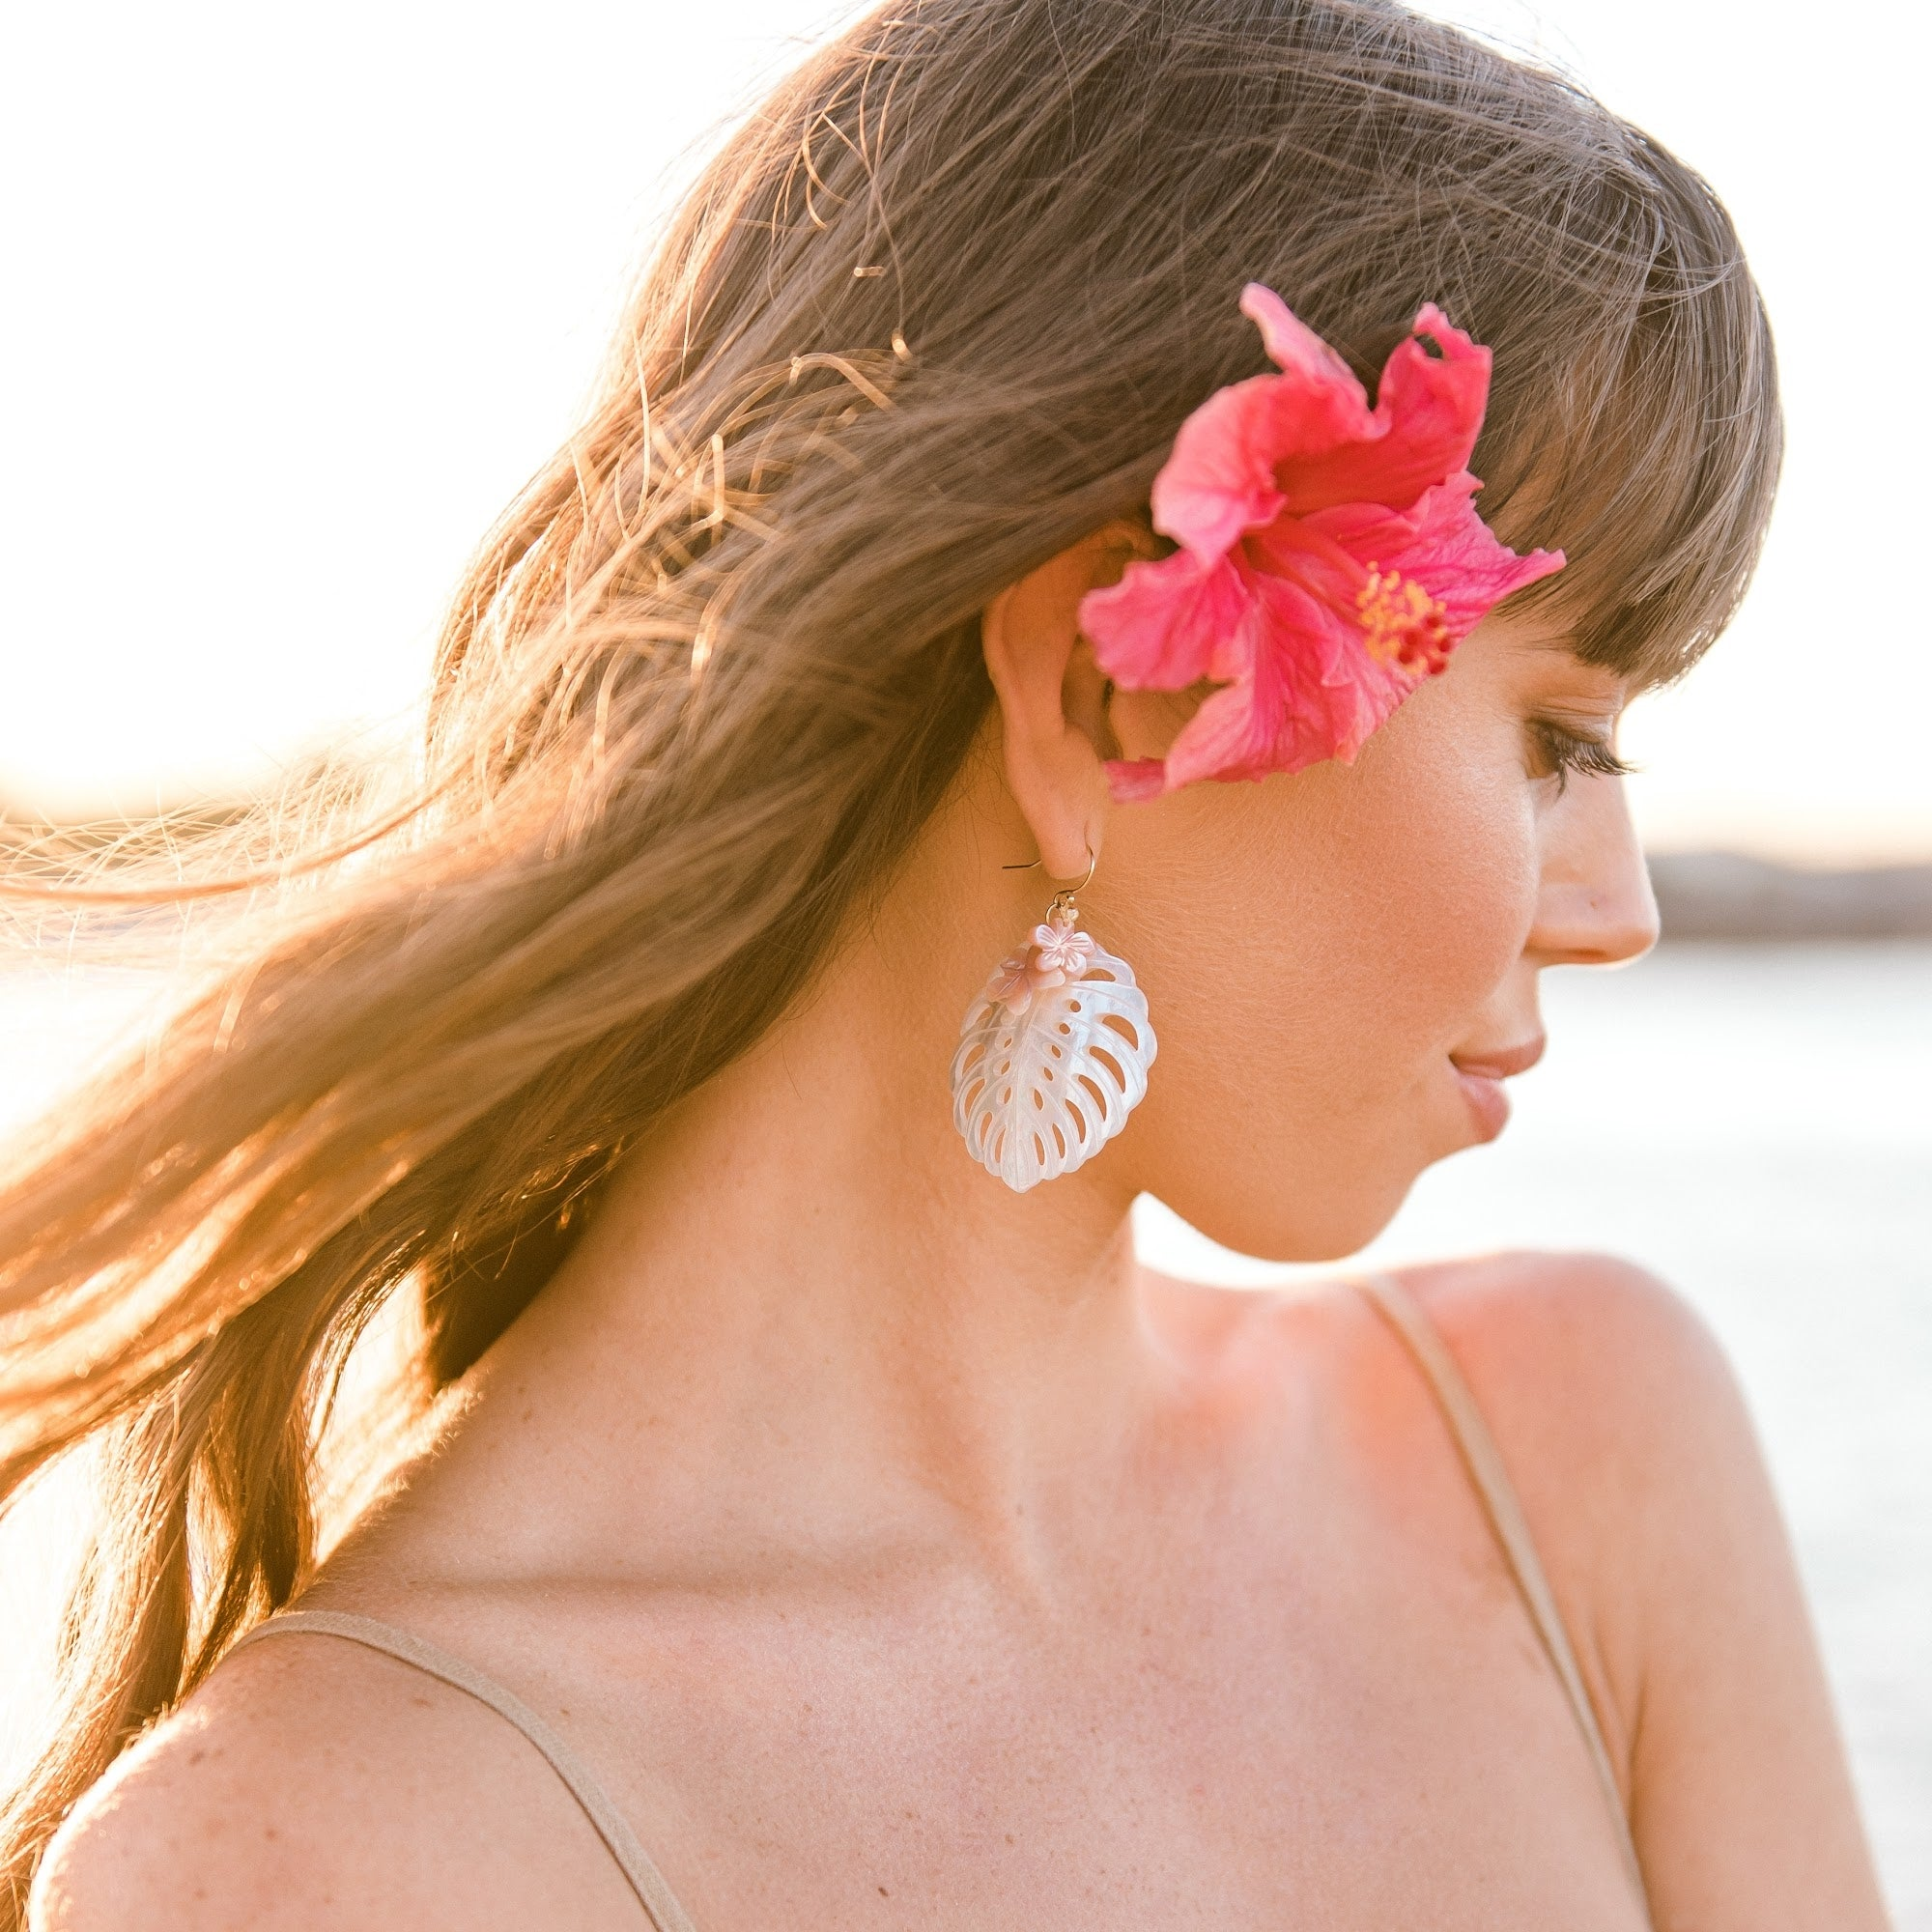 Launui Earrings - 21 Degrees North Designs